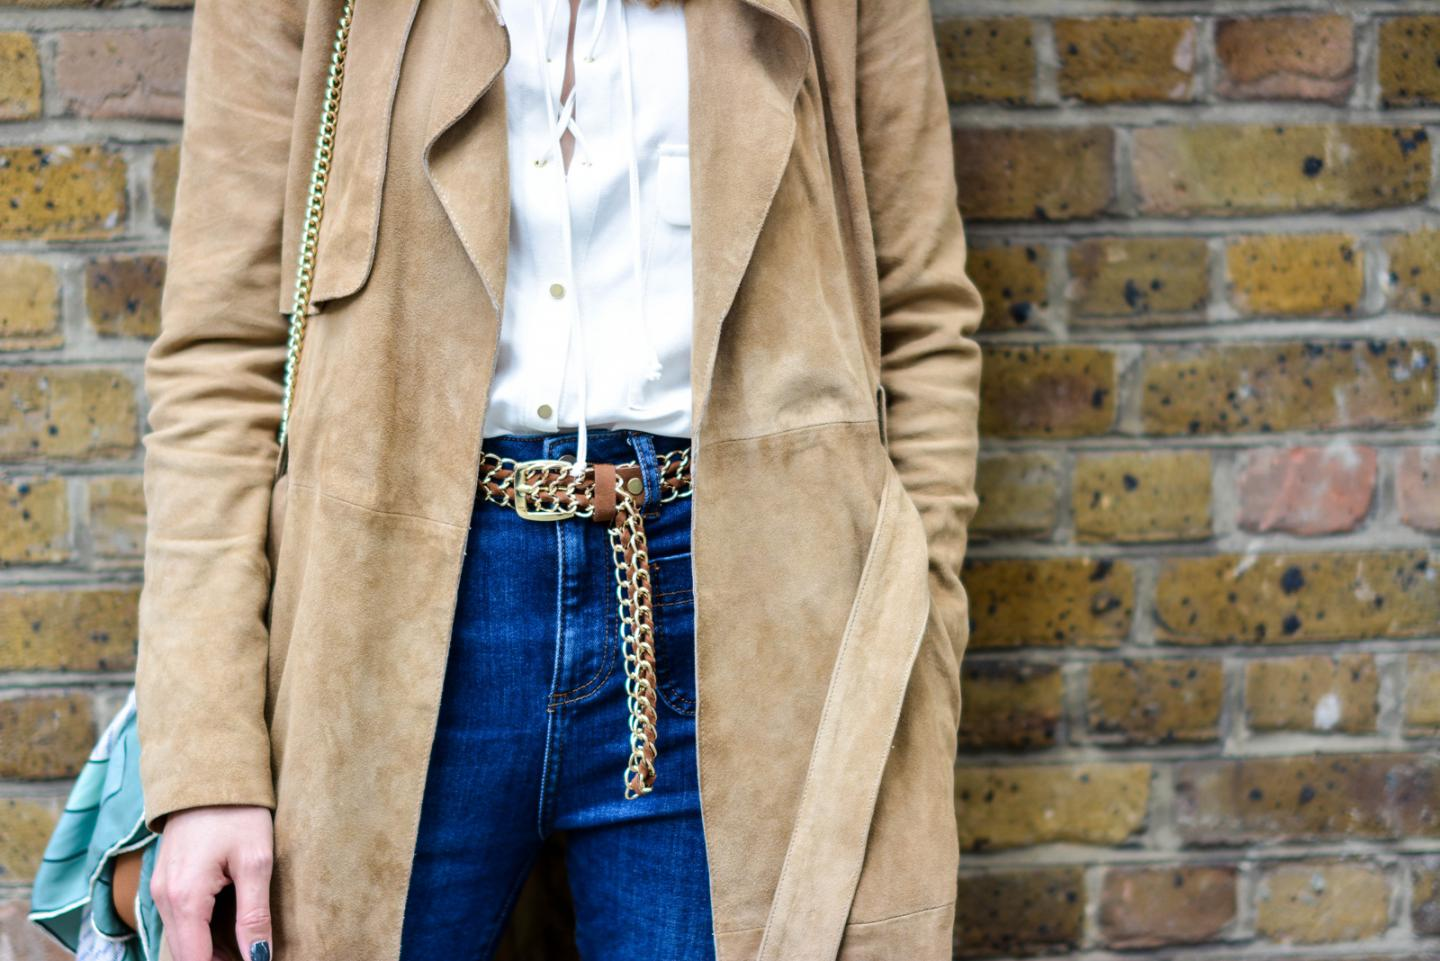 EJSTYLE - Suede trench coat by Gestuz, Zara lace up shirt, High waisted jeans, tan chain belt